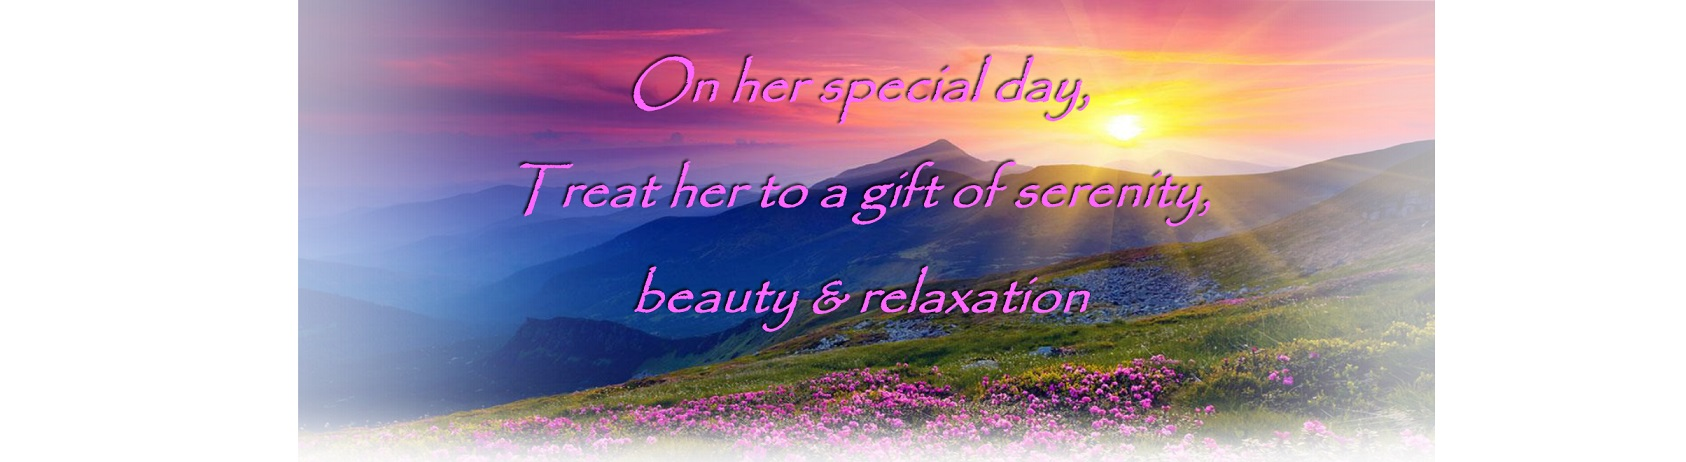 Mothers-Day-IMAGE-32